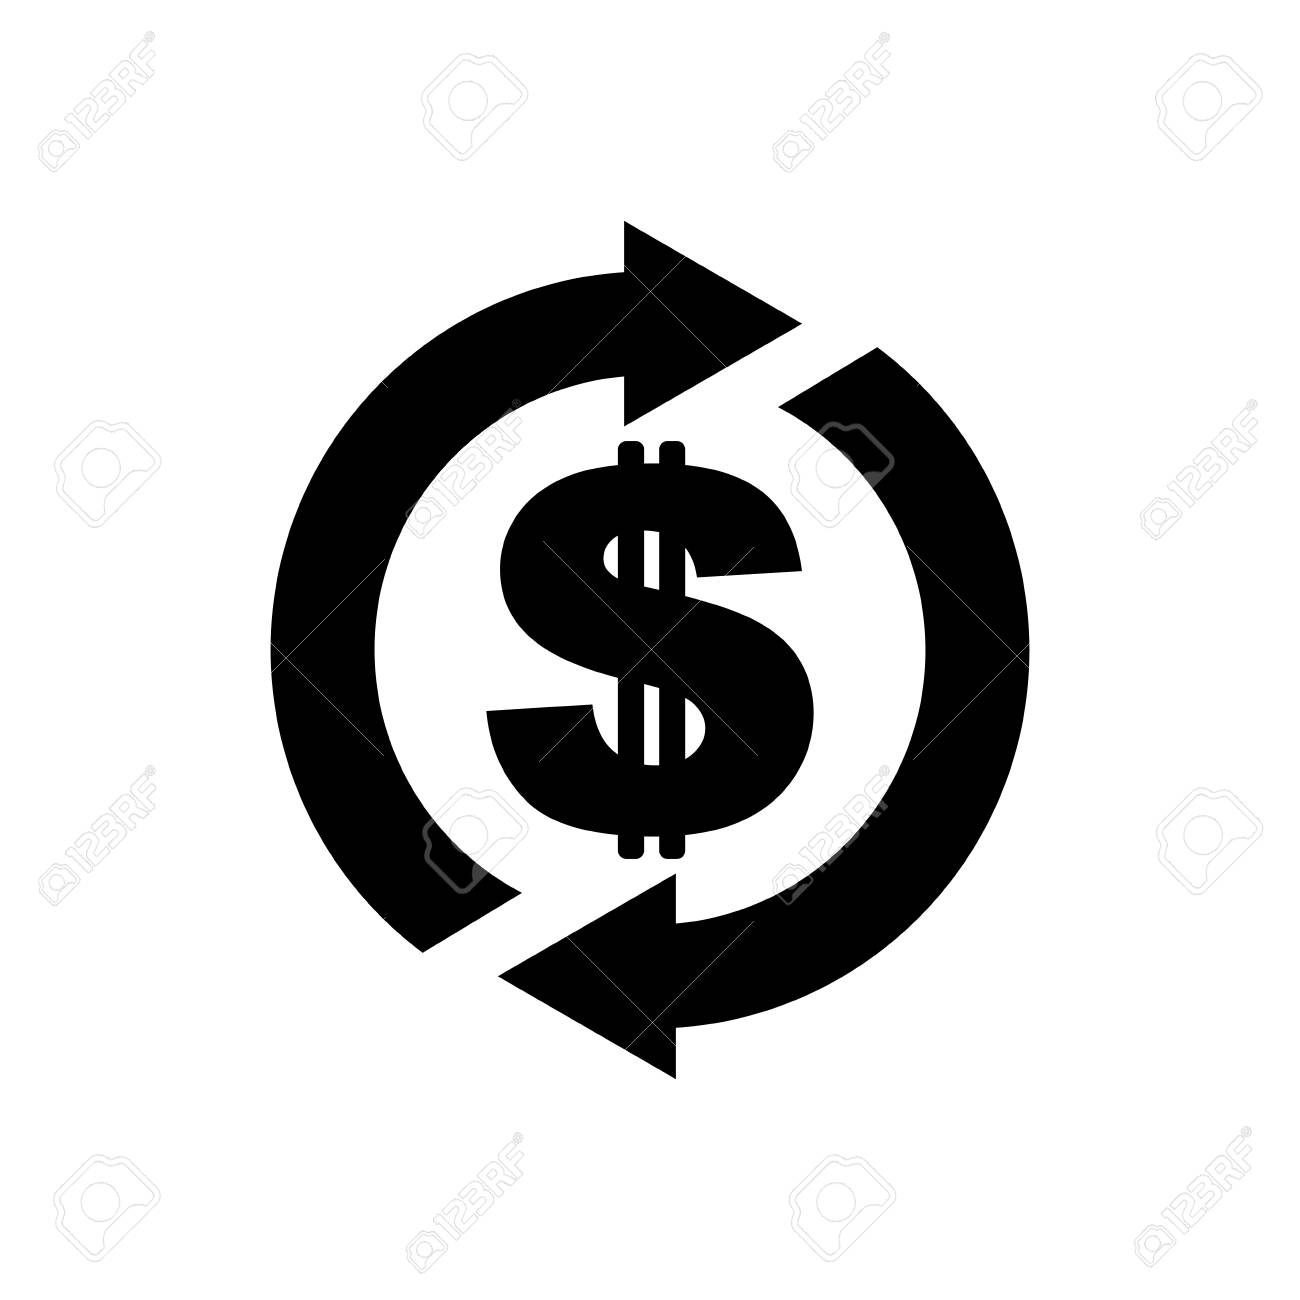 cash back icon royalty free cliparts vectors and stock illustration image 86379551 cash back icon